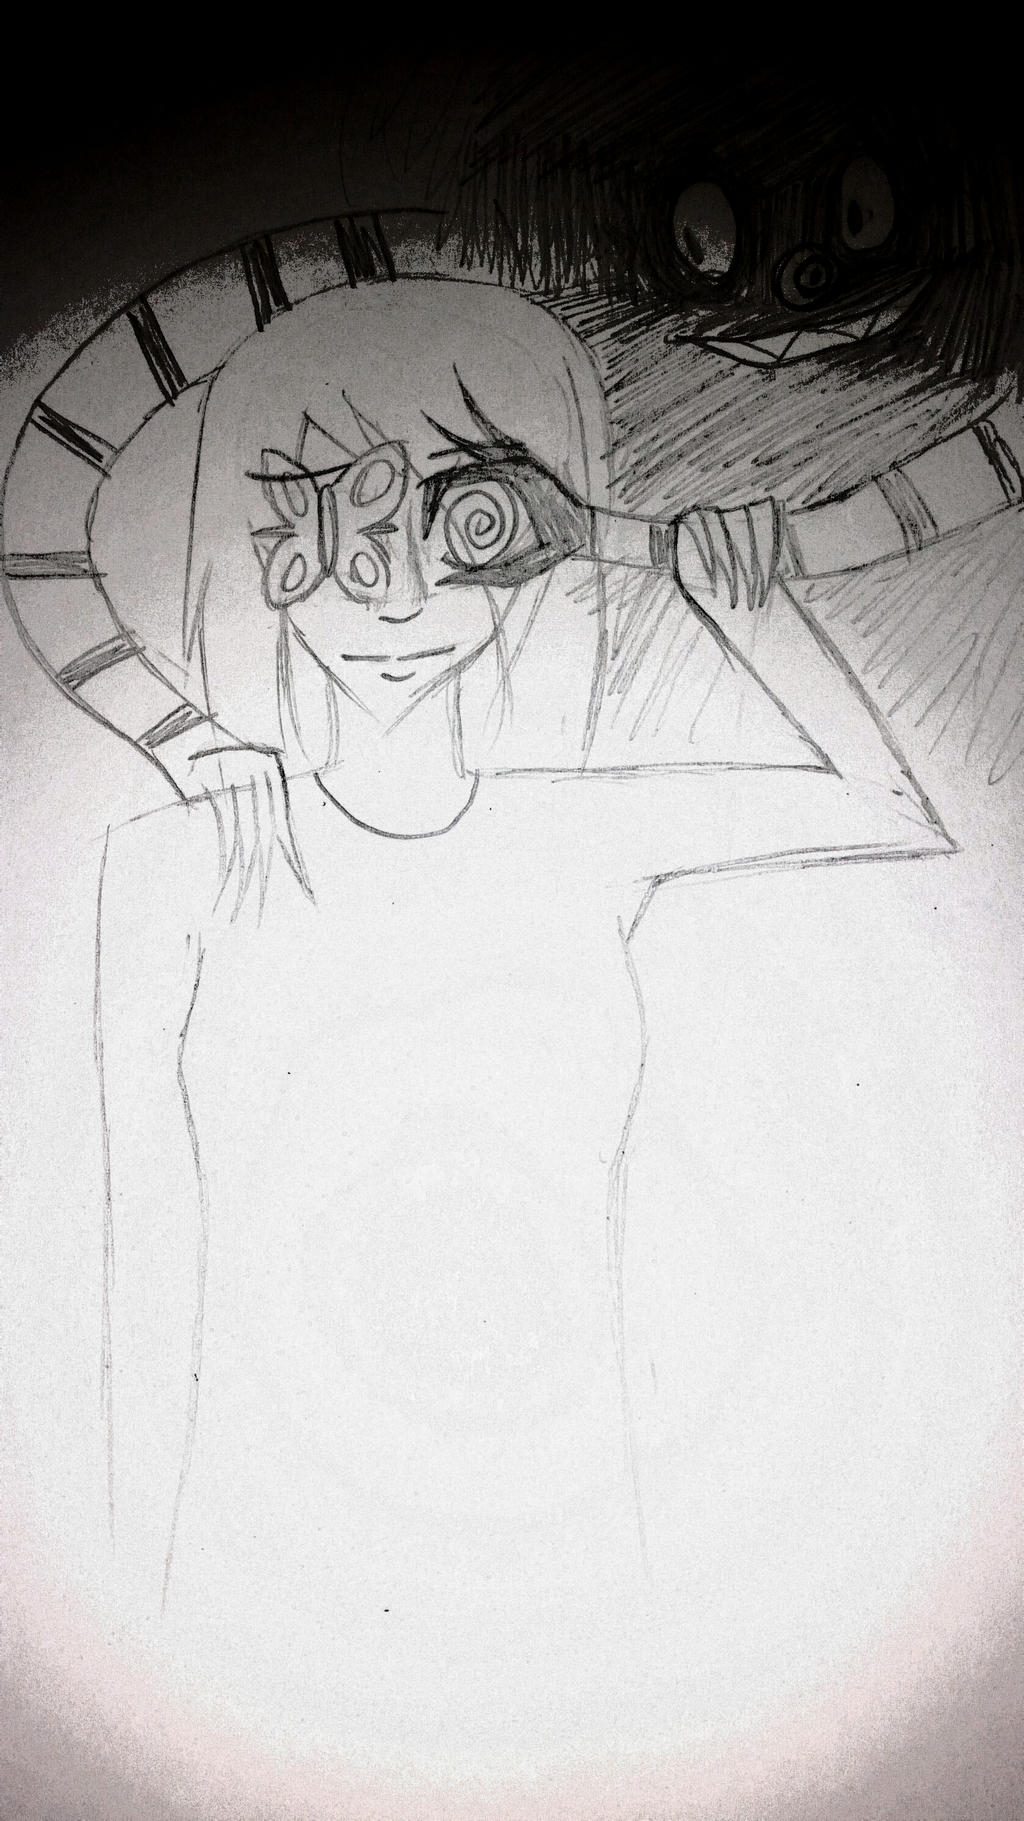 Loffin Jay j and a' Hypnos sleeping god the Taylor by AesumEnergySCREEE